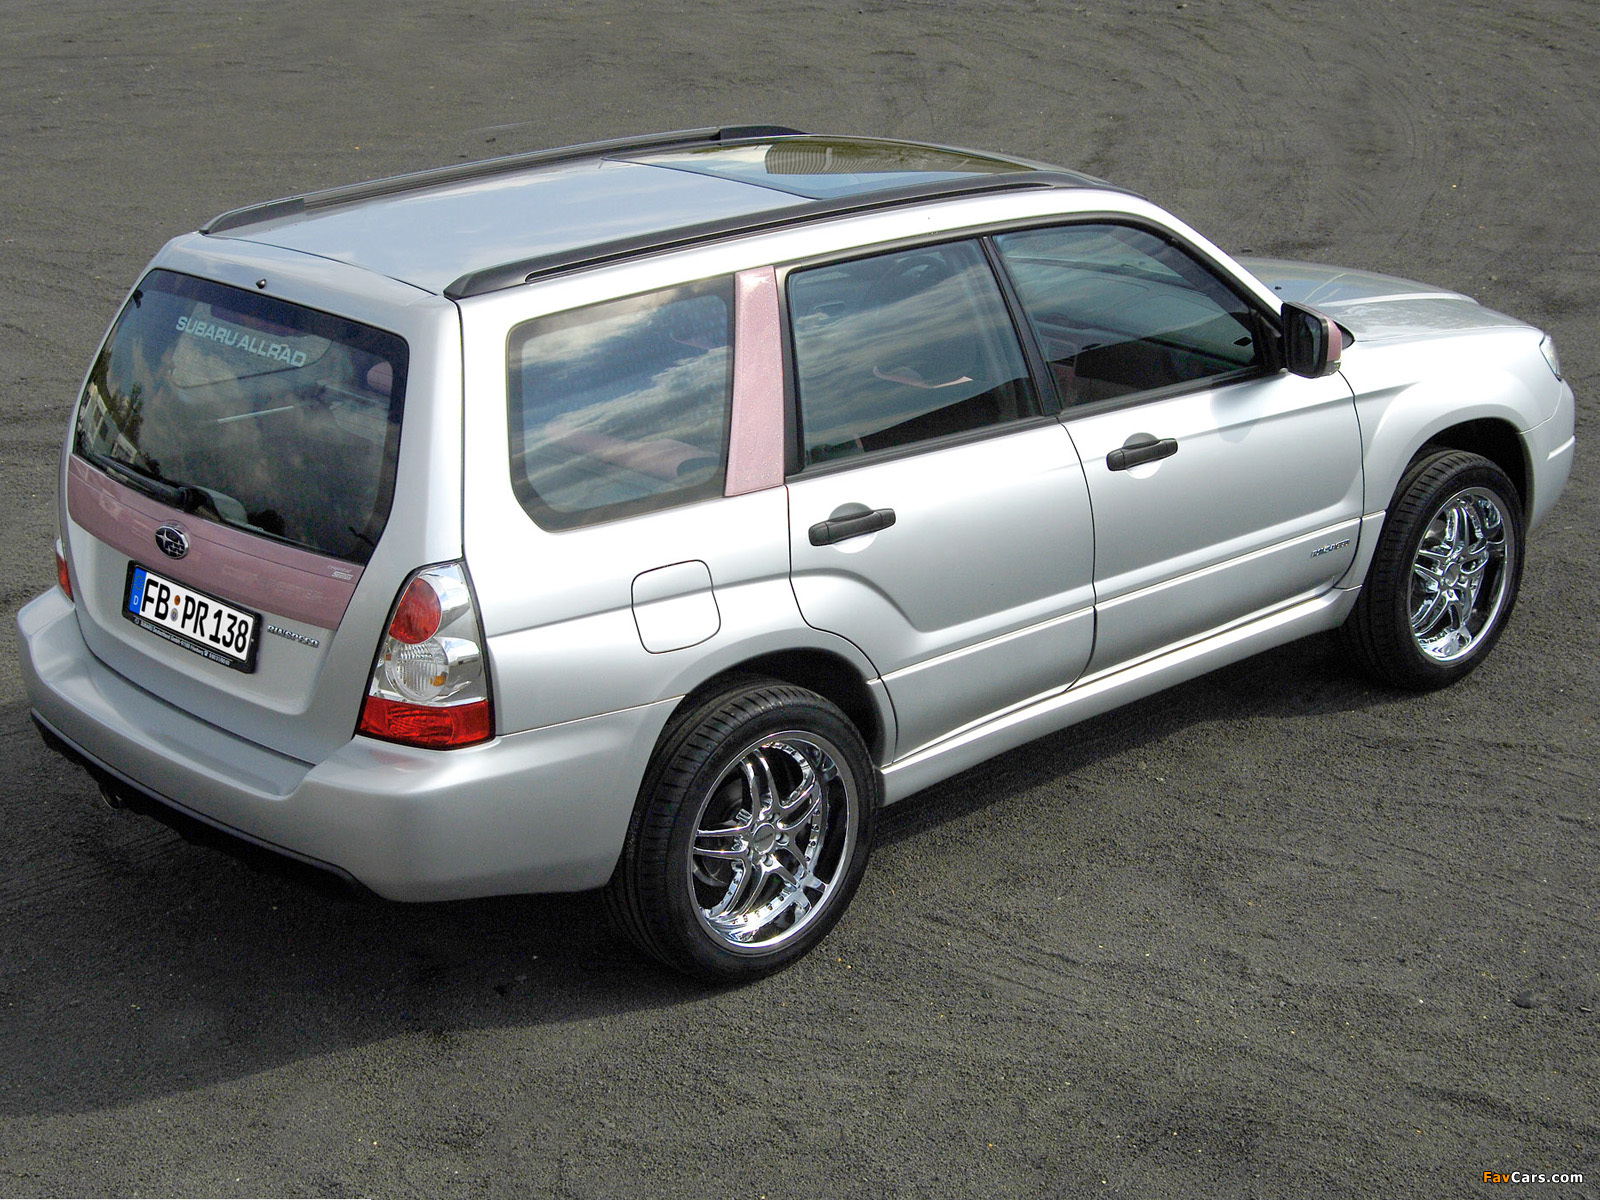 Rinspeed Subaru Forester Lady 2005 images (1600 x 1200)